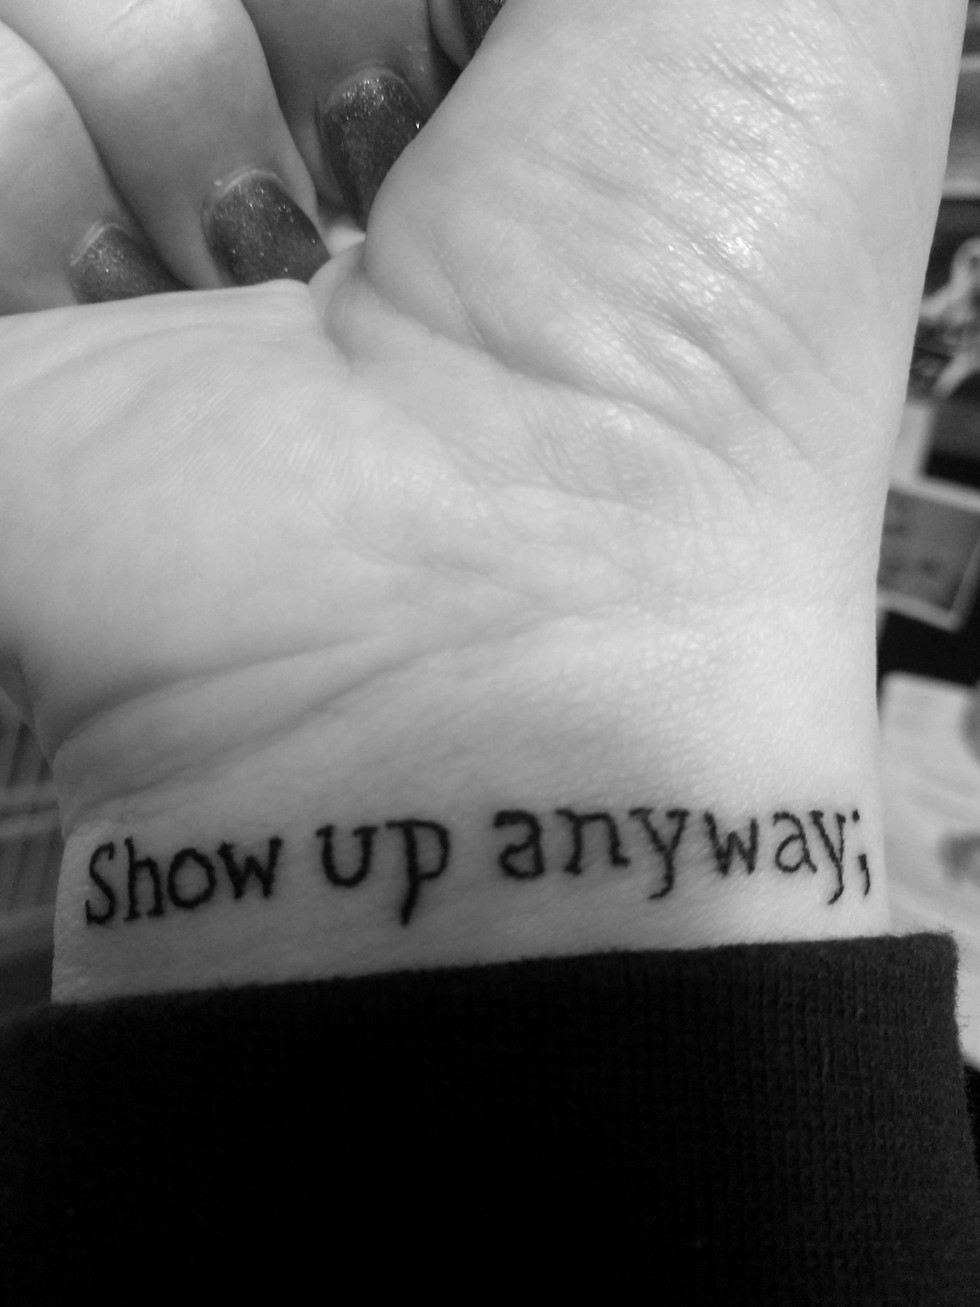 SHOW UP ANYWAY;